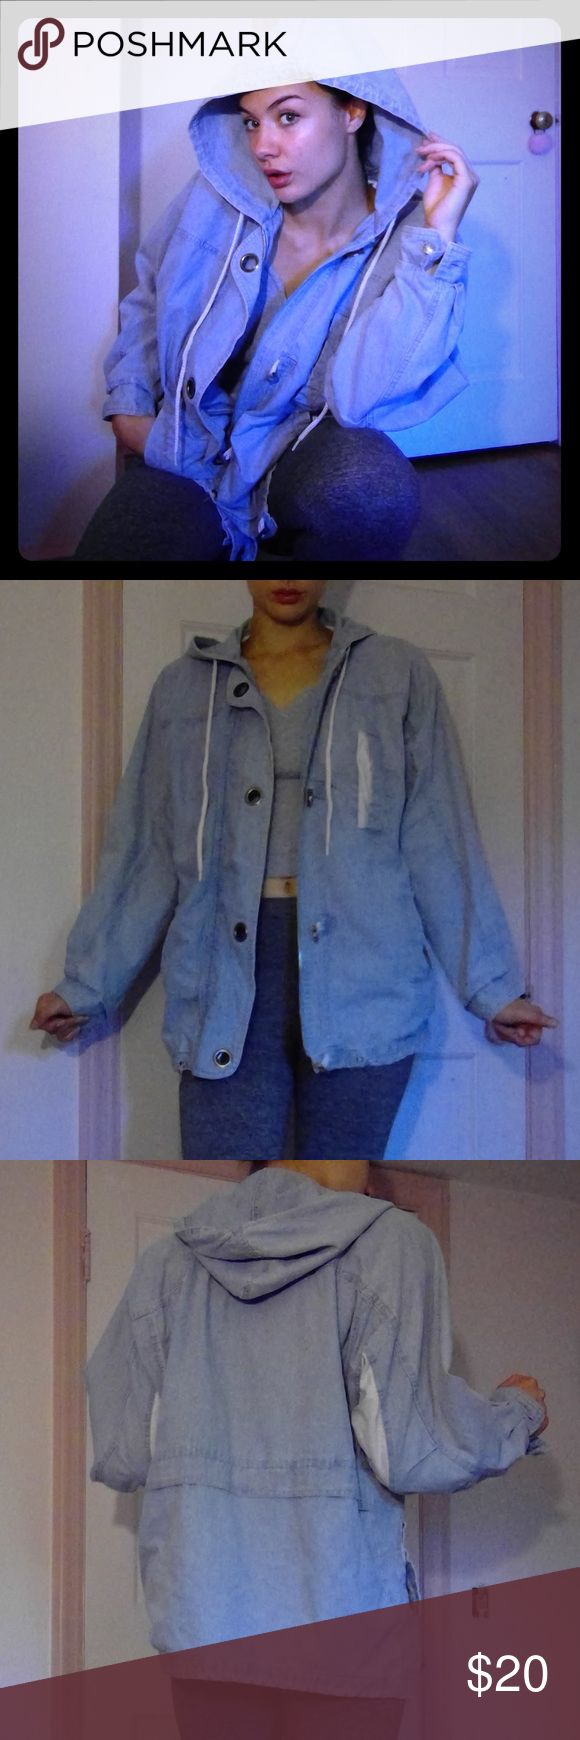 Light Blue Oversized Denim Zip Up Jacket Has a very cute, nautical vibe. The pockets and underarms of this jacket is a light blue and white pinstripe pattern. Hood with drawstrings. Lined with a soft fleece-like material. This is definitely from the 80's but it is in good condition!! Made in Hong Kong. Let me know if you would like measurements! :) Vintage Jackets & Coats